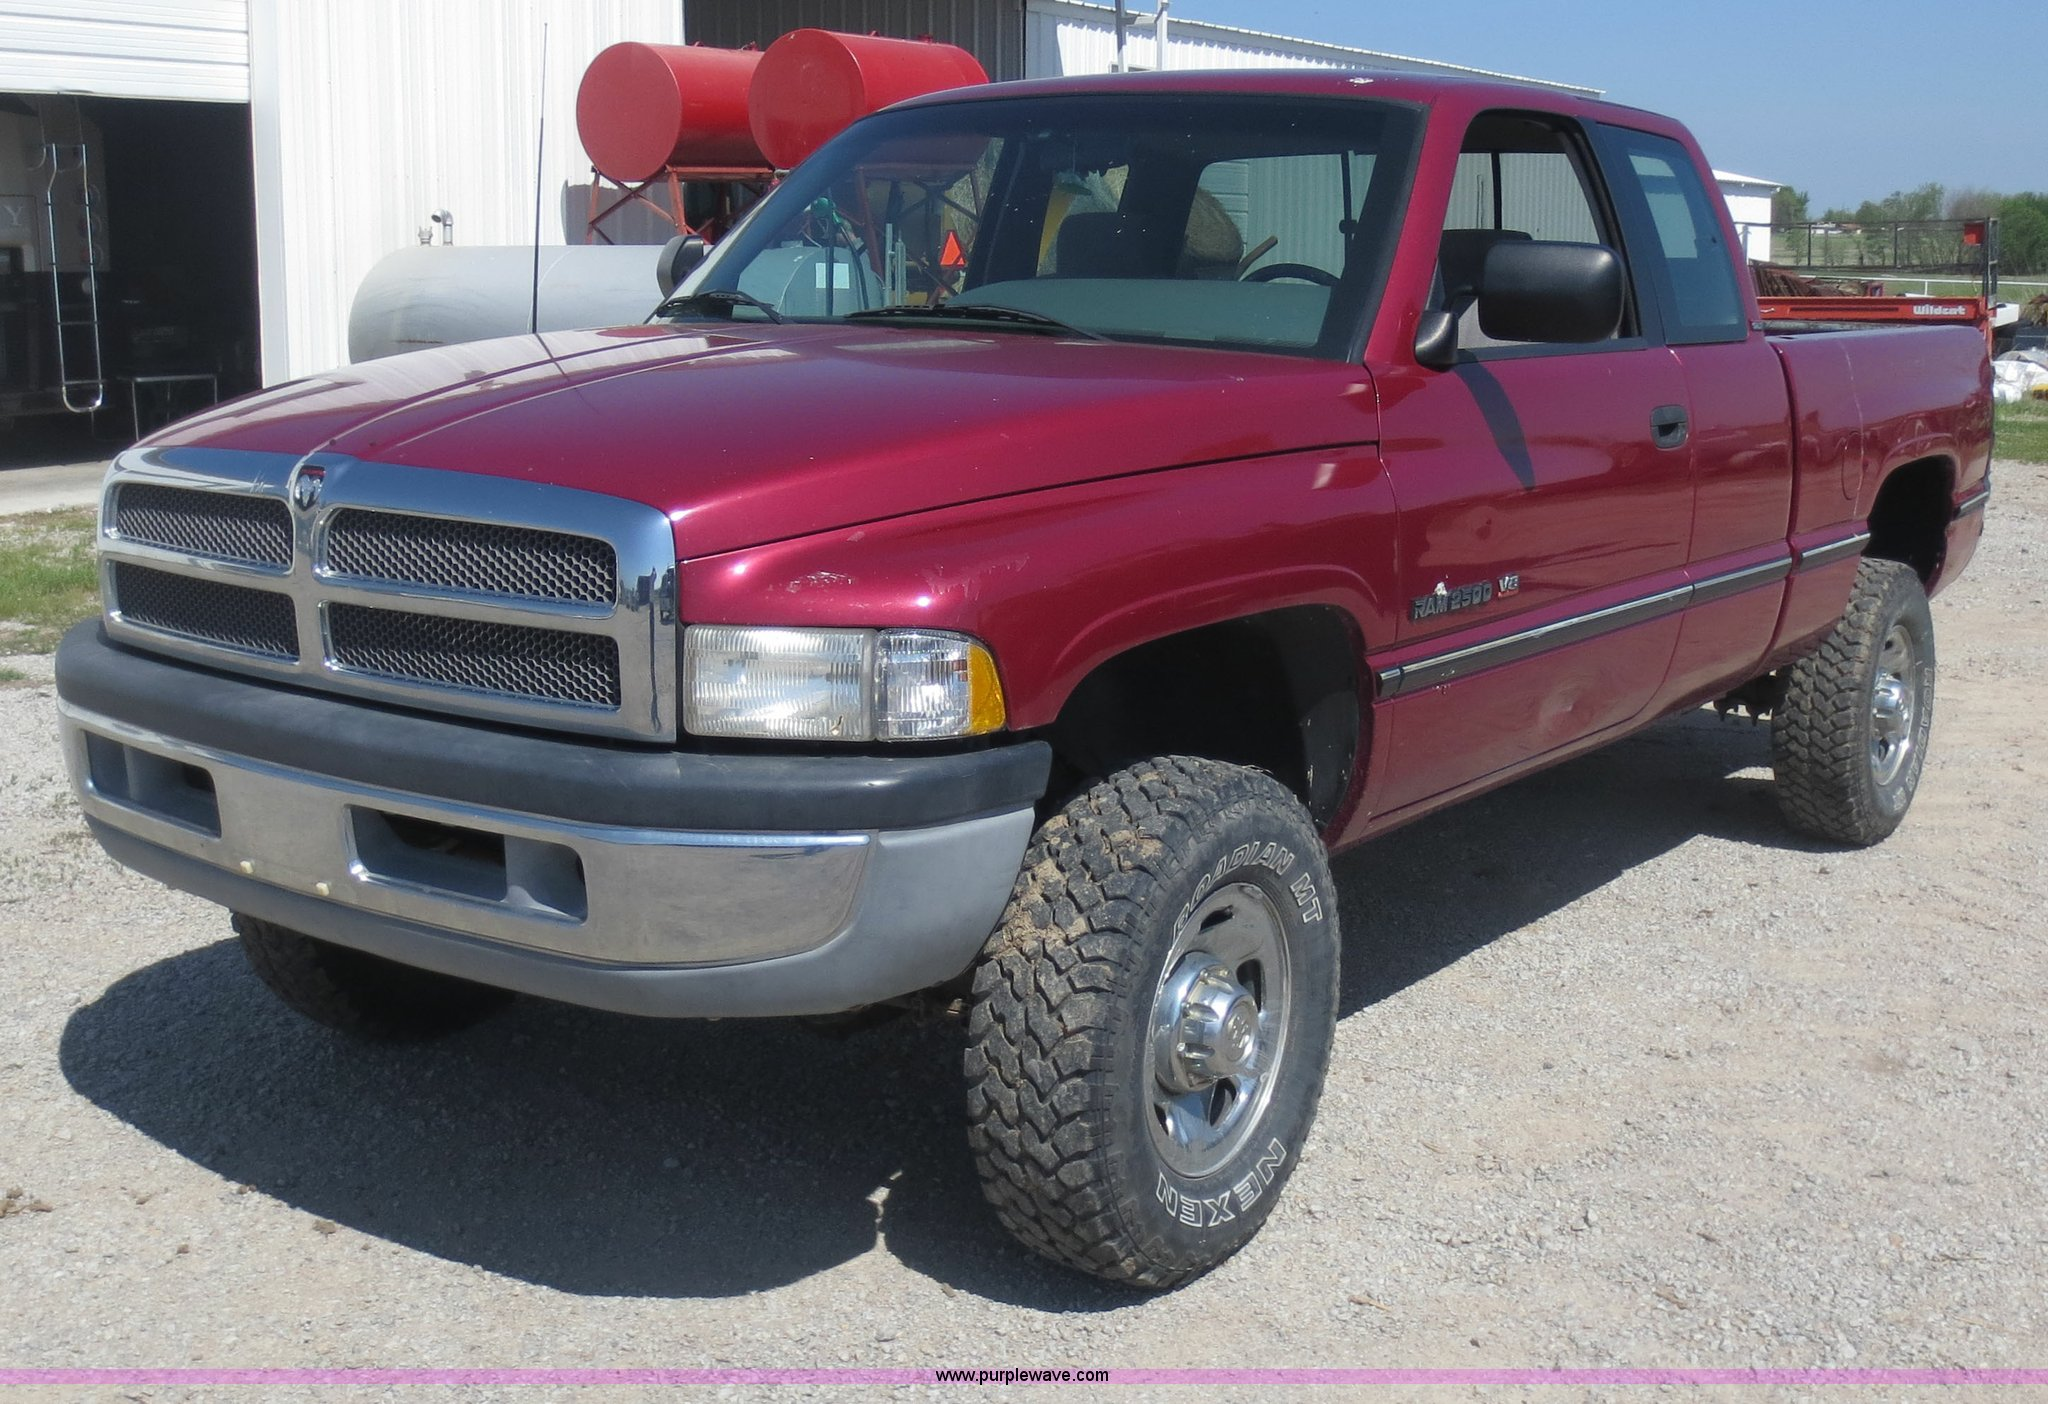 1996 Dodge Ram 2500 Club Cab pickup truck | Item D5838 | SOL